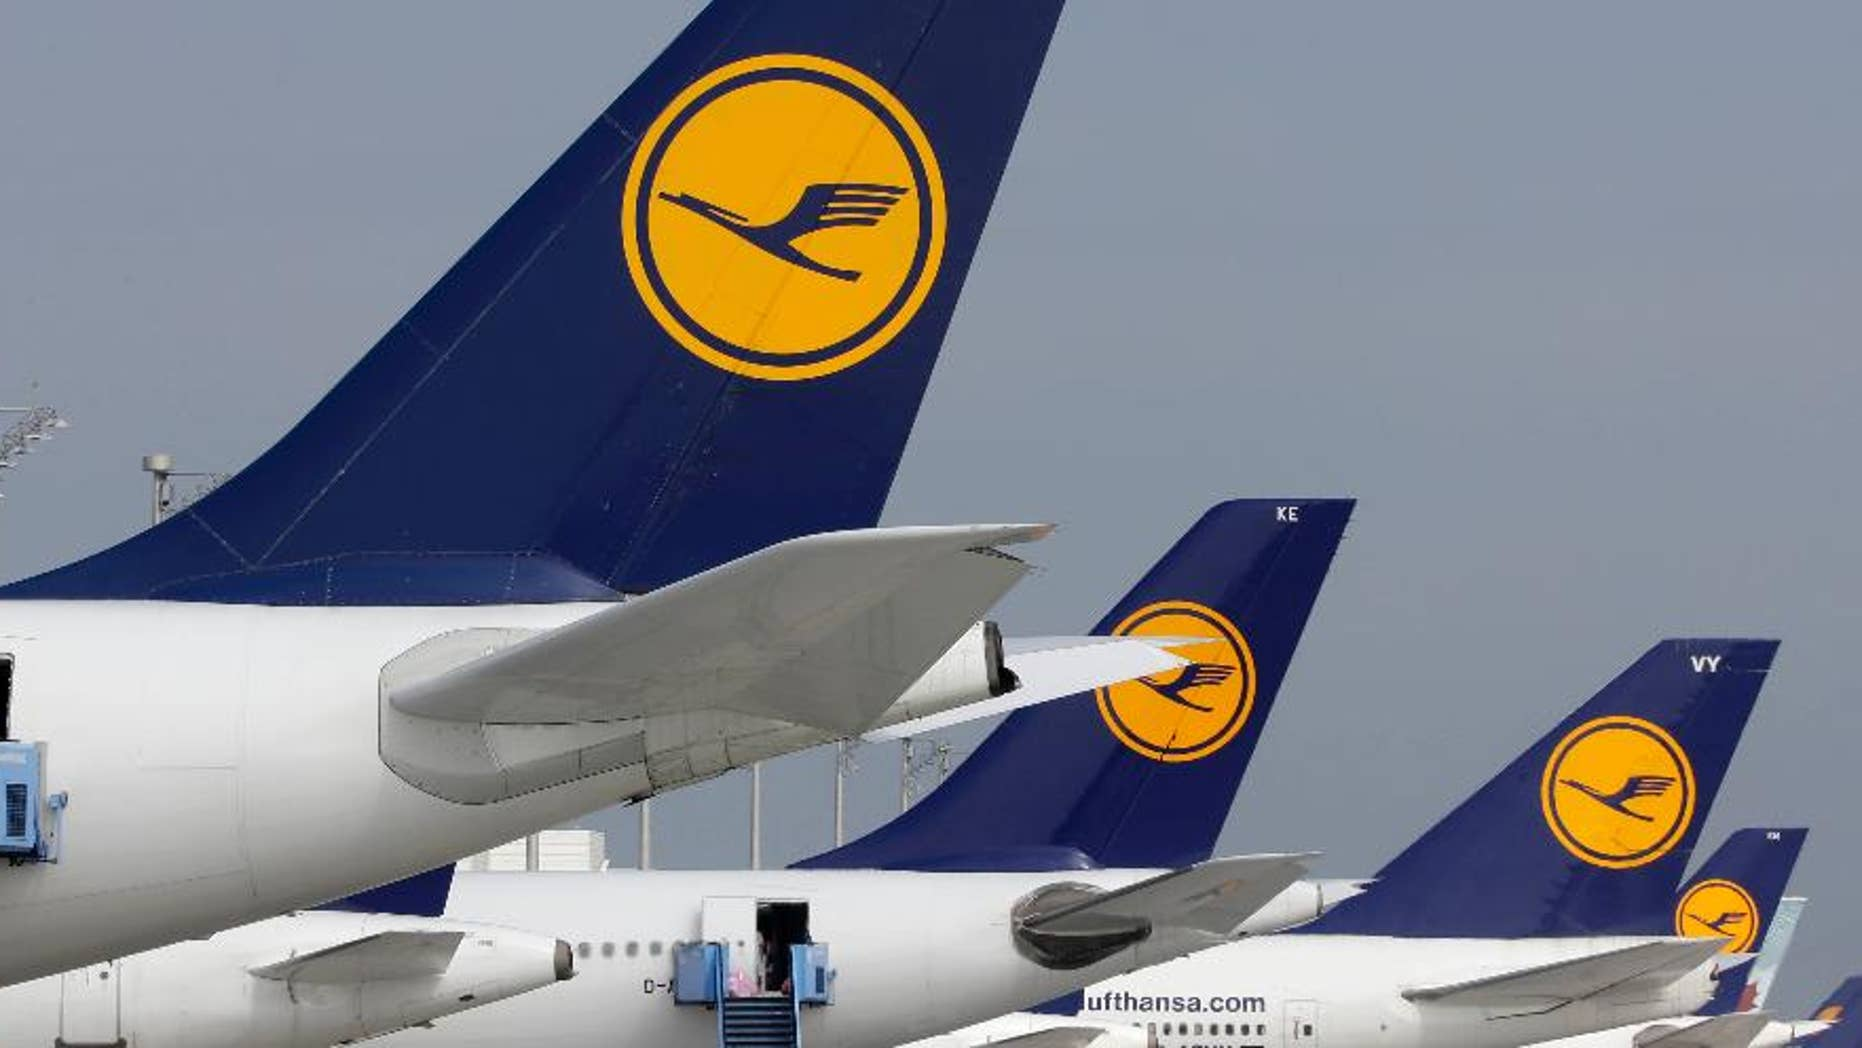 FILE - In this Sept. 10, 2014 file picture airport employees prepare aircrafts of the airliner Lufthansa at the airport during an eight-hour warning strike of Lufthansa pilots in Munich, southern Germany. A union representing Lufthansa's pilots says they will walk off the job at Frankfurt airport for eight hours on Tuesday, preventing departures by Germany's biggest airline from its busiest airport. The Vereinigung Cockpit union said Monday Sept. 15, 2014  that pilots on international long-distance flights from Frankfurt will walk out from 9 a.m. to 5 p.m. (0700 to 1500 GMT). The two sides are locked in a dispute over the pilots' demand that Lufthansa keep paying a transition payment for those wanting to retire early.  (AP Photo/Matthias Schrader,File)